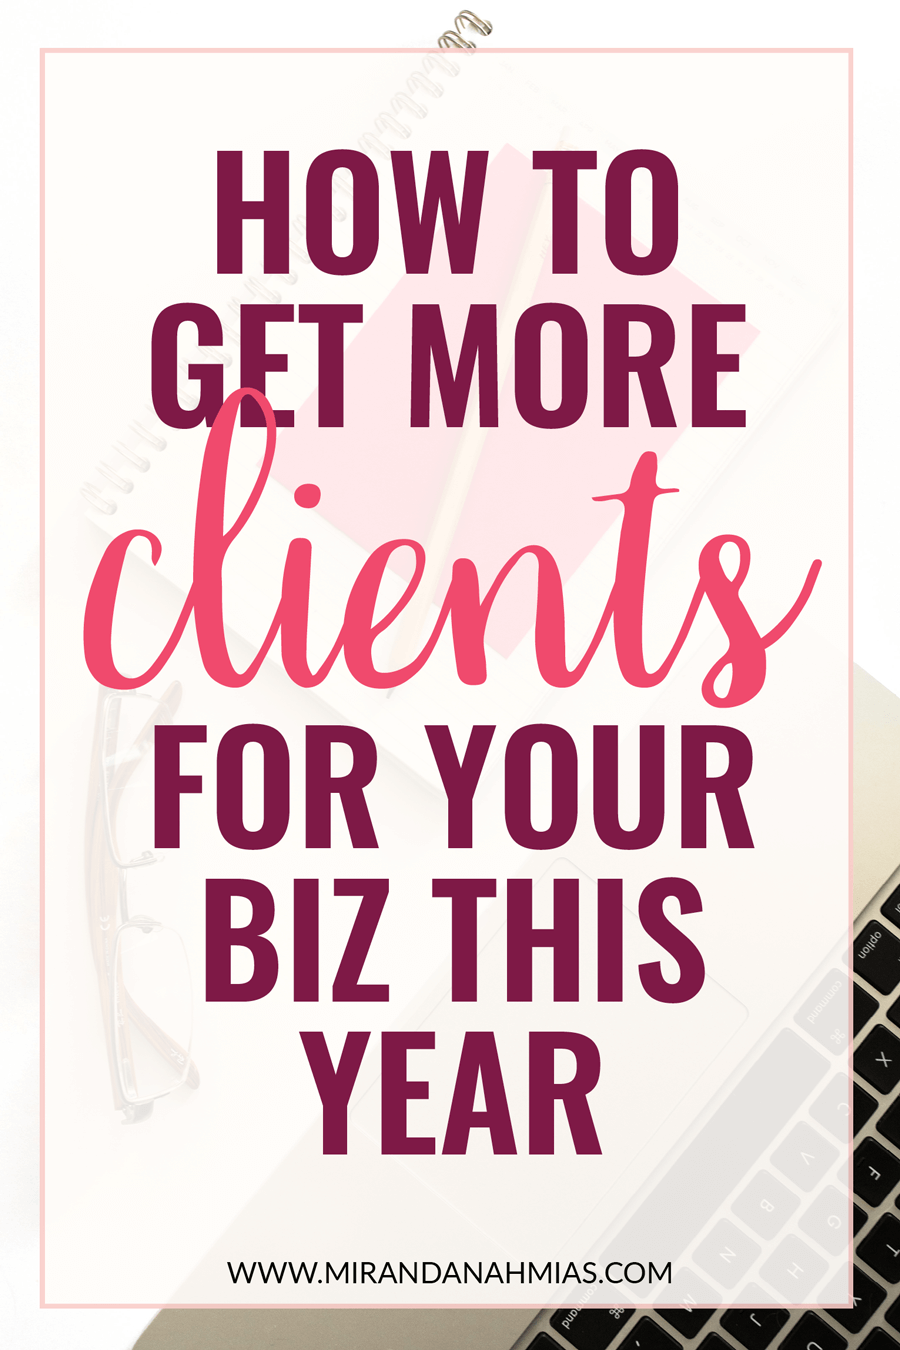 How to Get More Clients For Your Business This Year // Miranda Nahmias